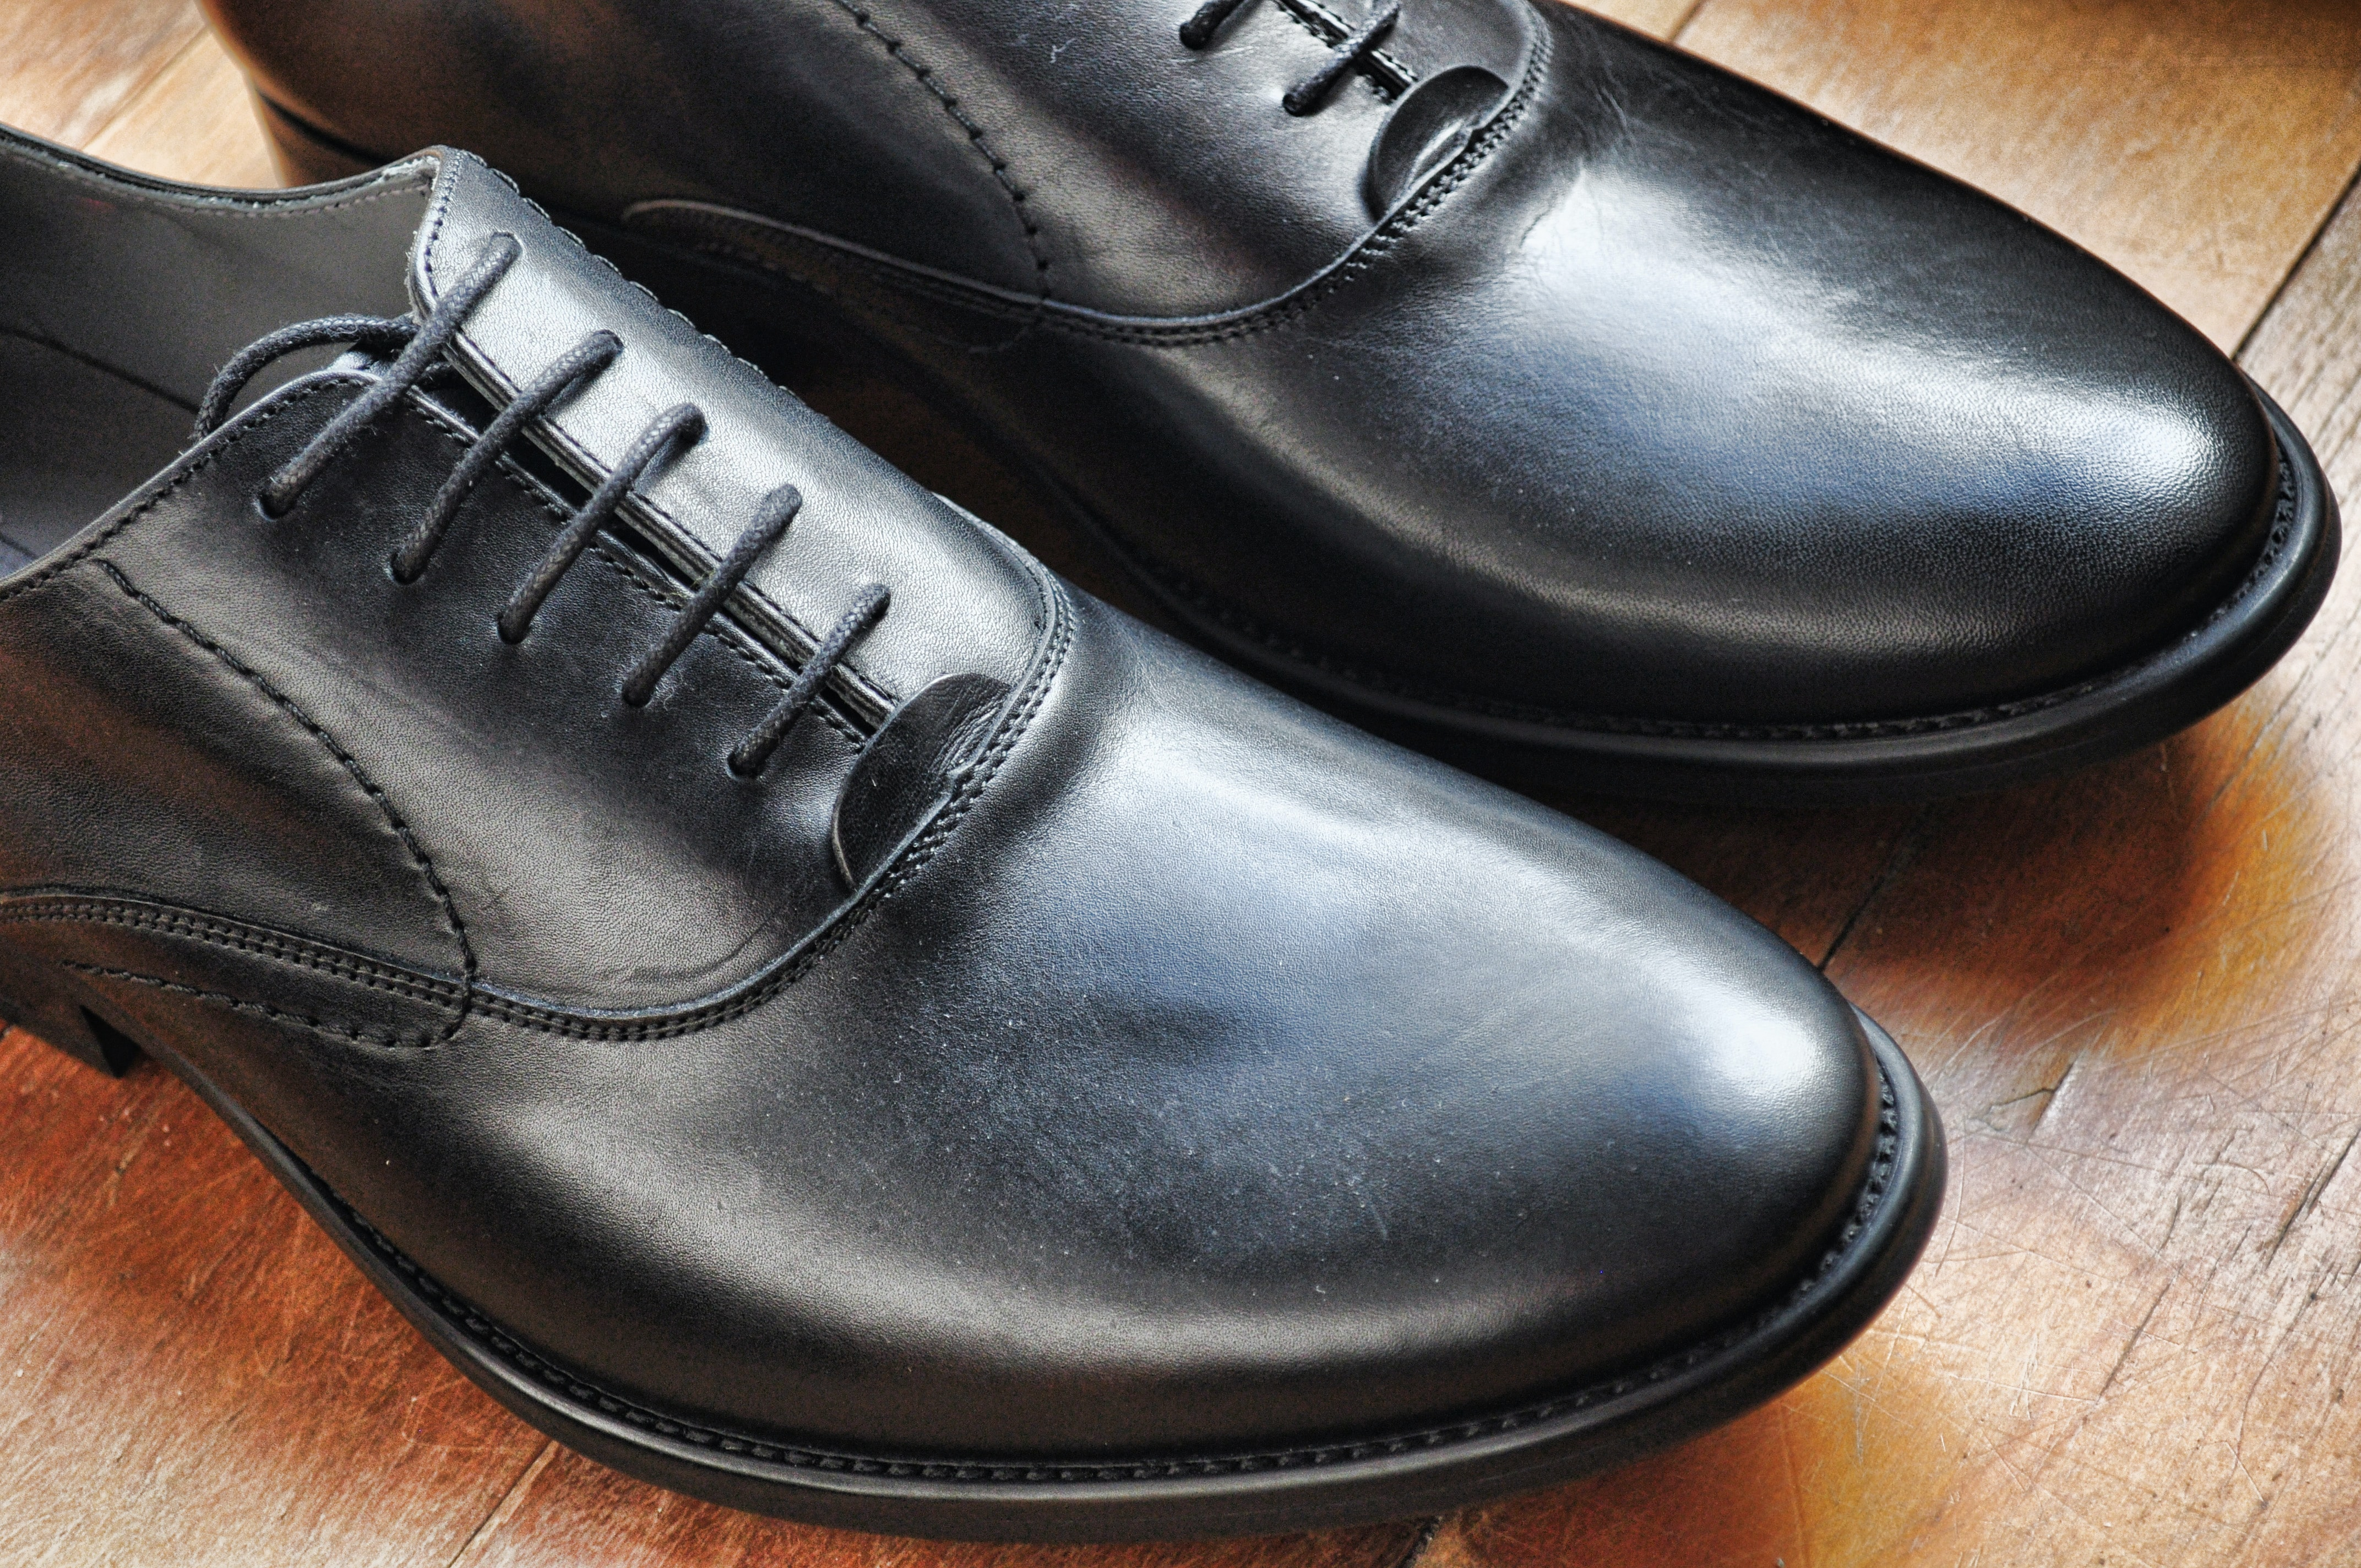 A close-up of a shiny pair of black leather shoes